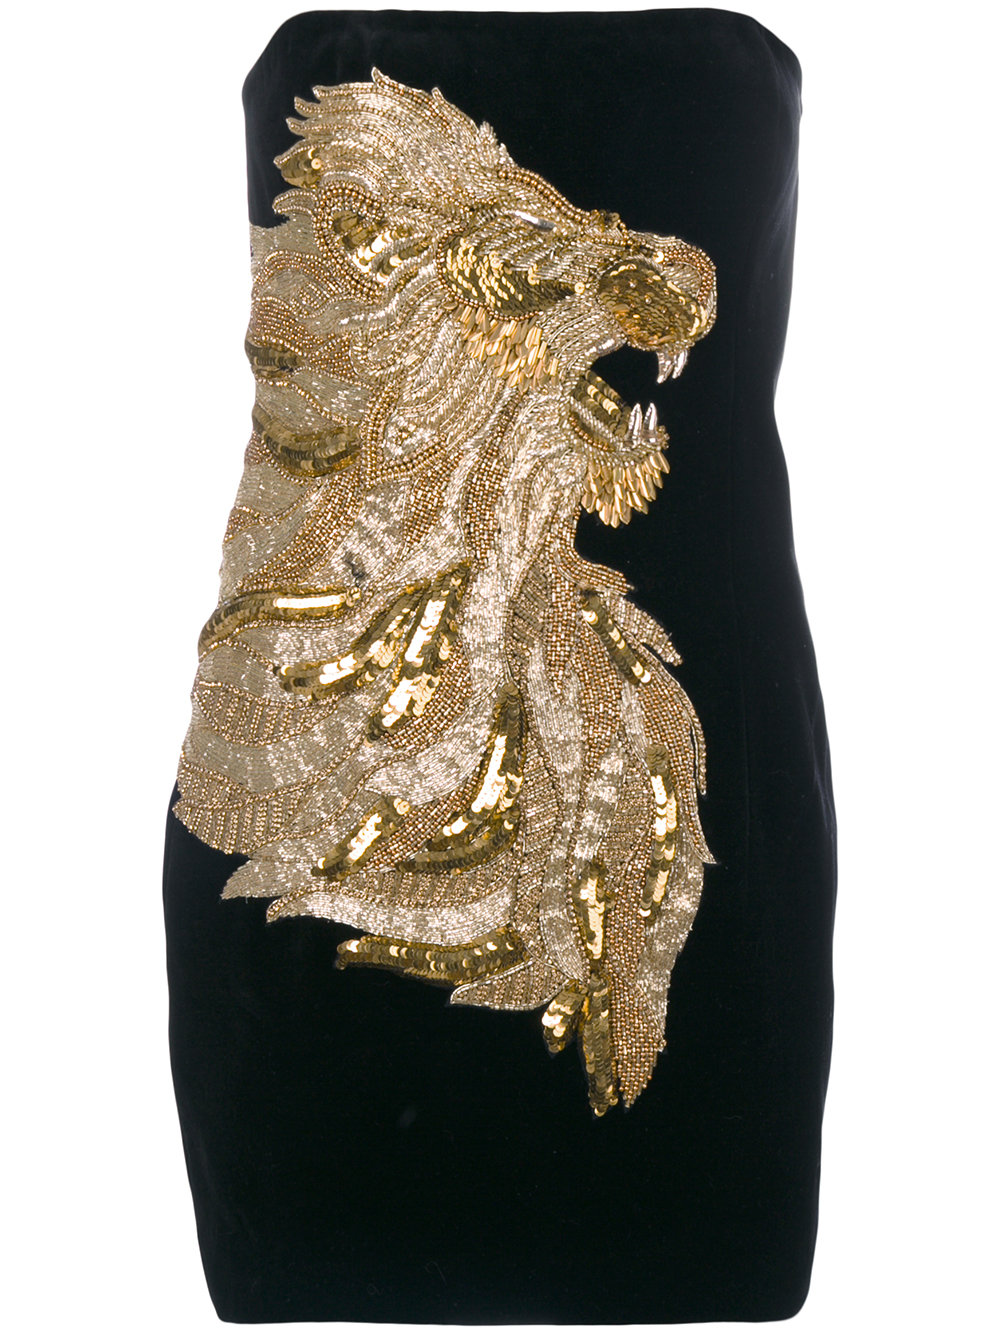 BALMAIN mini dress - $4,875